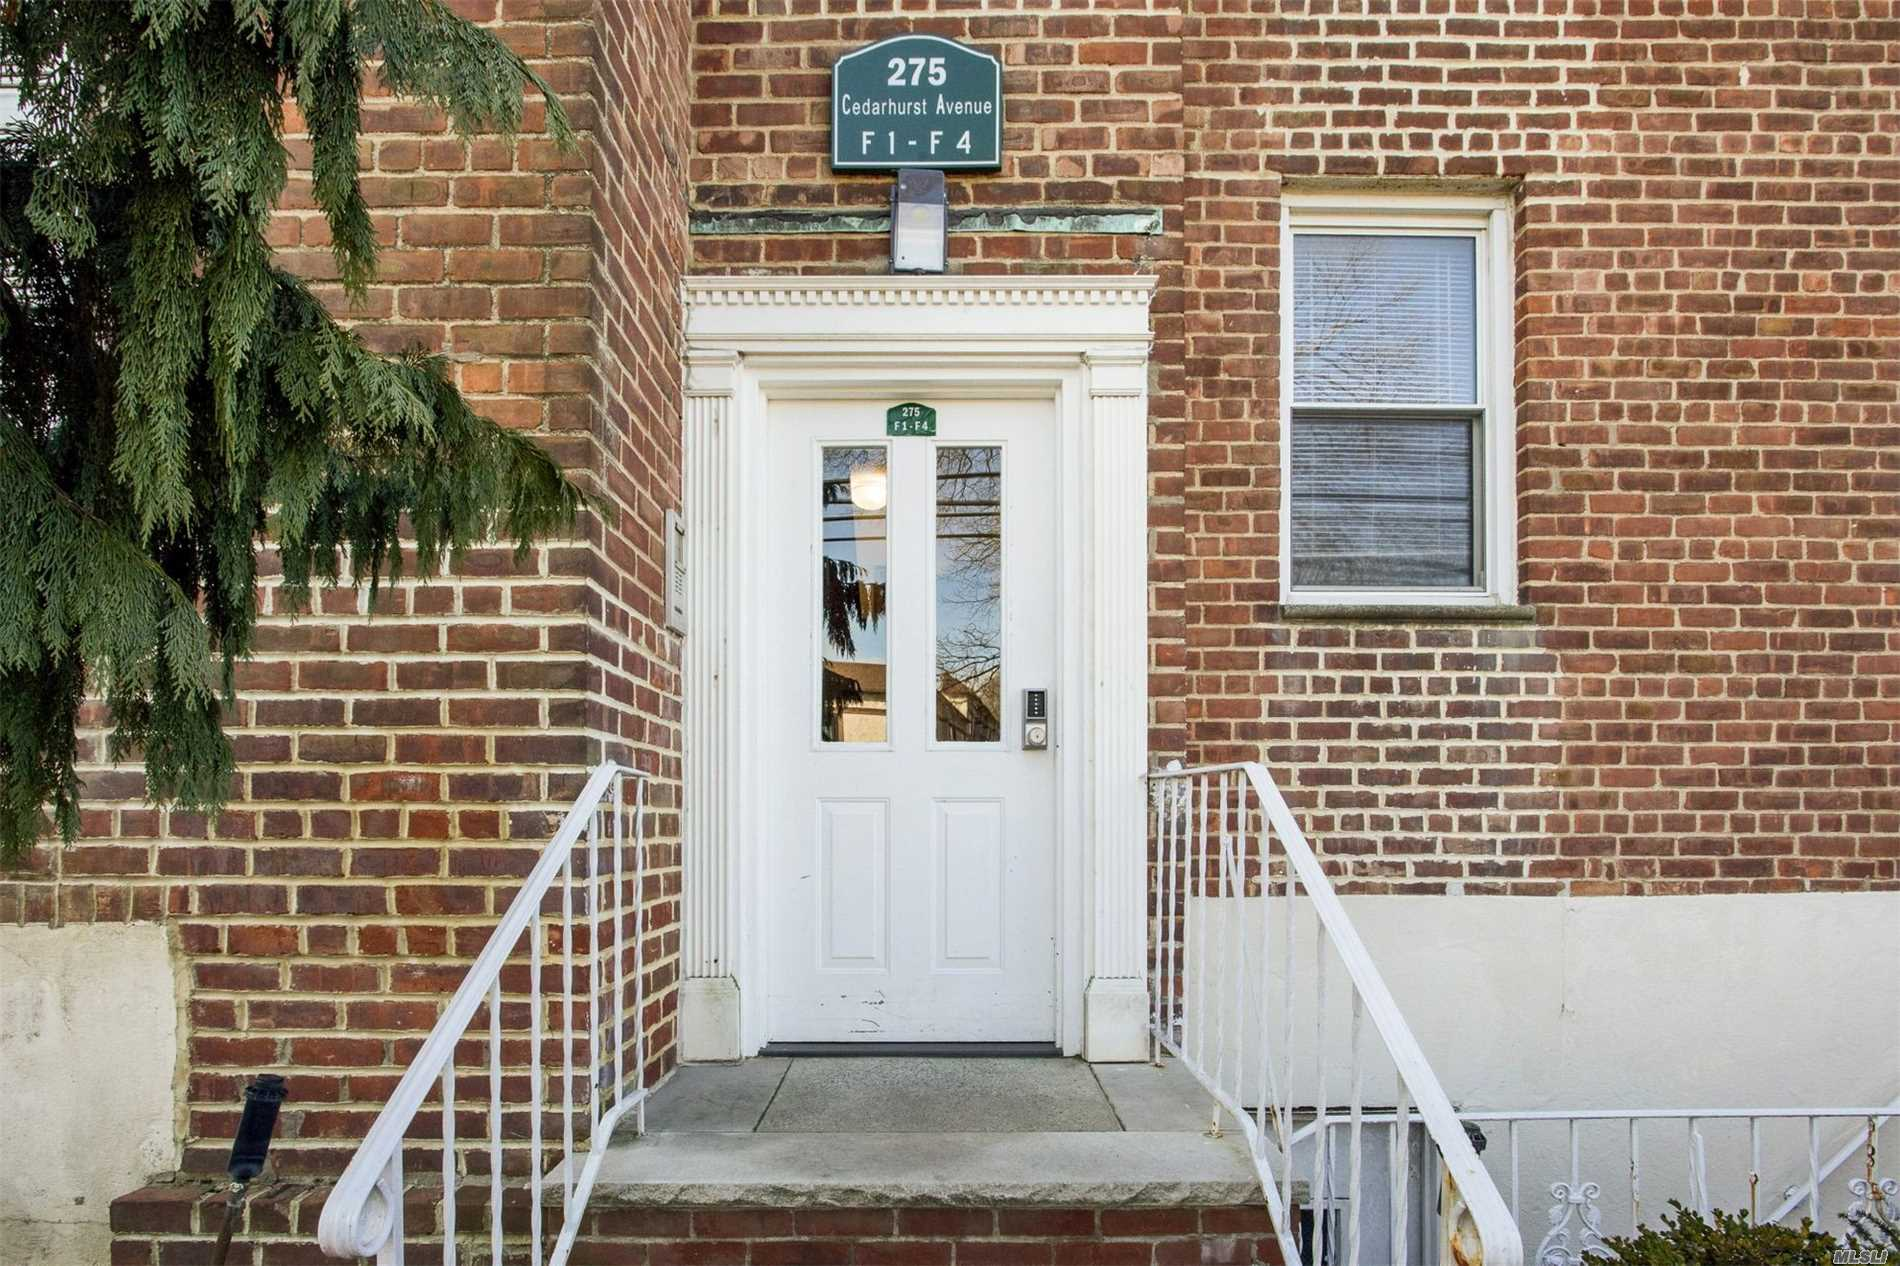 Premier Coop Of The Five Towns! Totally Renovated First Floor Apartment. Large Entry Hall With Room For Breakfast Table. Kitchen W/ Cherrywood Cabinets, Granite Countertops & Backsplash. Ss Appliances, Tiled Floor, Huge Lr/Dr W/ Architectual Moldings, Mstr Br W/ Door Leading To Terrace, Large 2nd Br, Granite Bathroomw/ Framelss Shower Door. Recessed Lighting Throughout, Centrally Located Near Lirr, Shopping & Houses Of Worship.